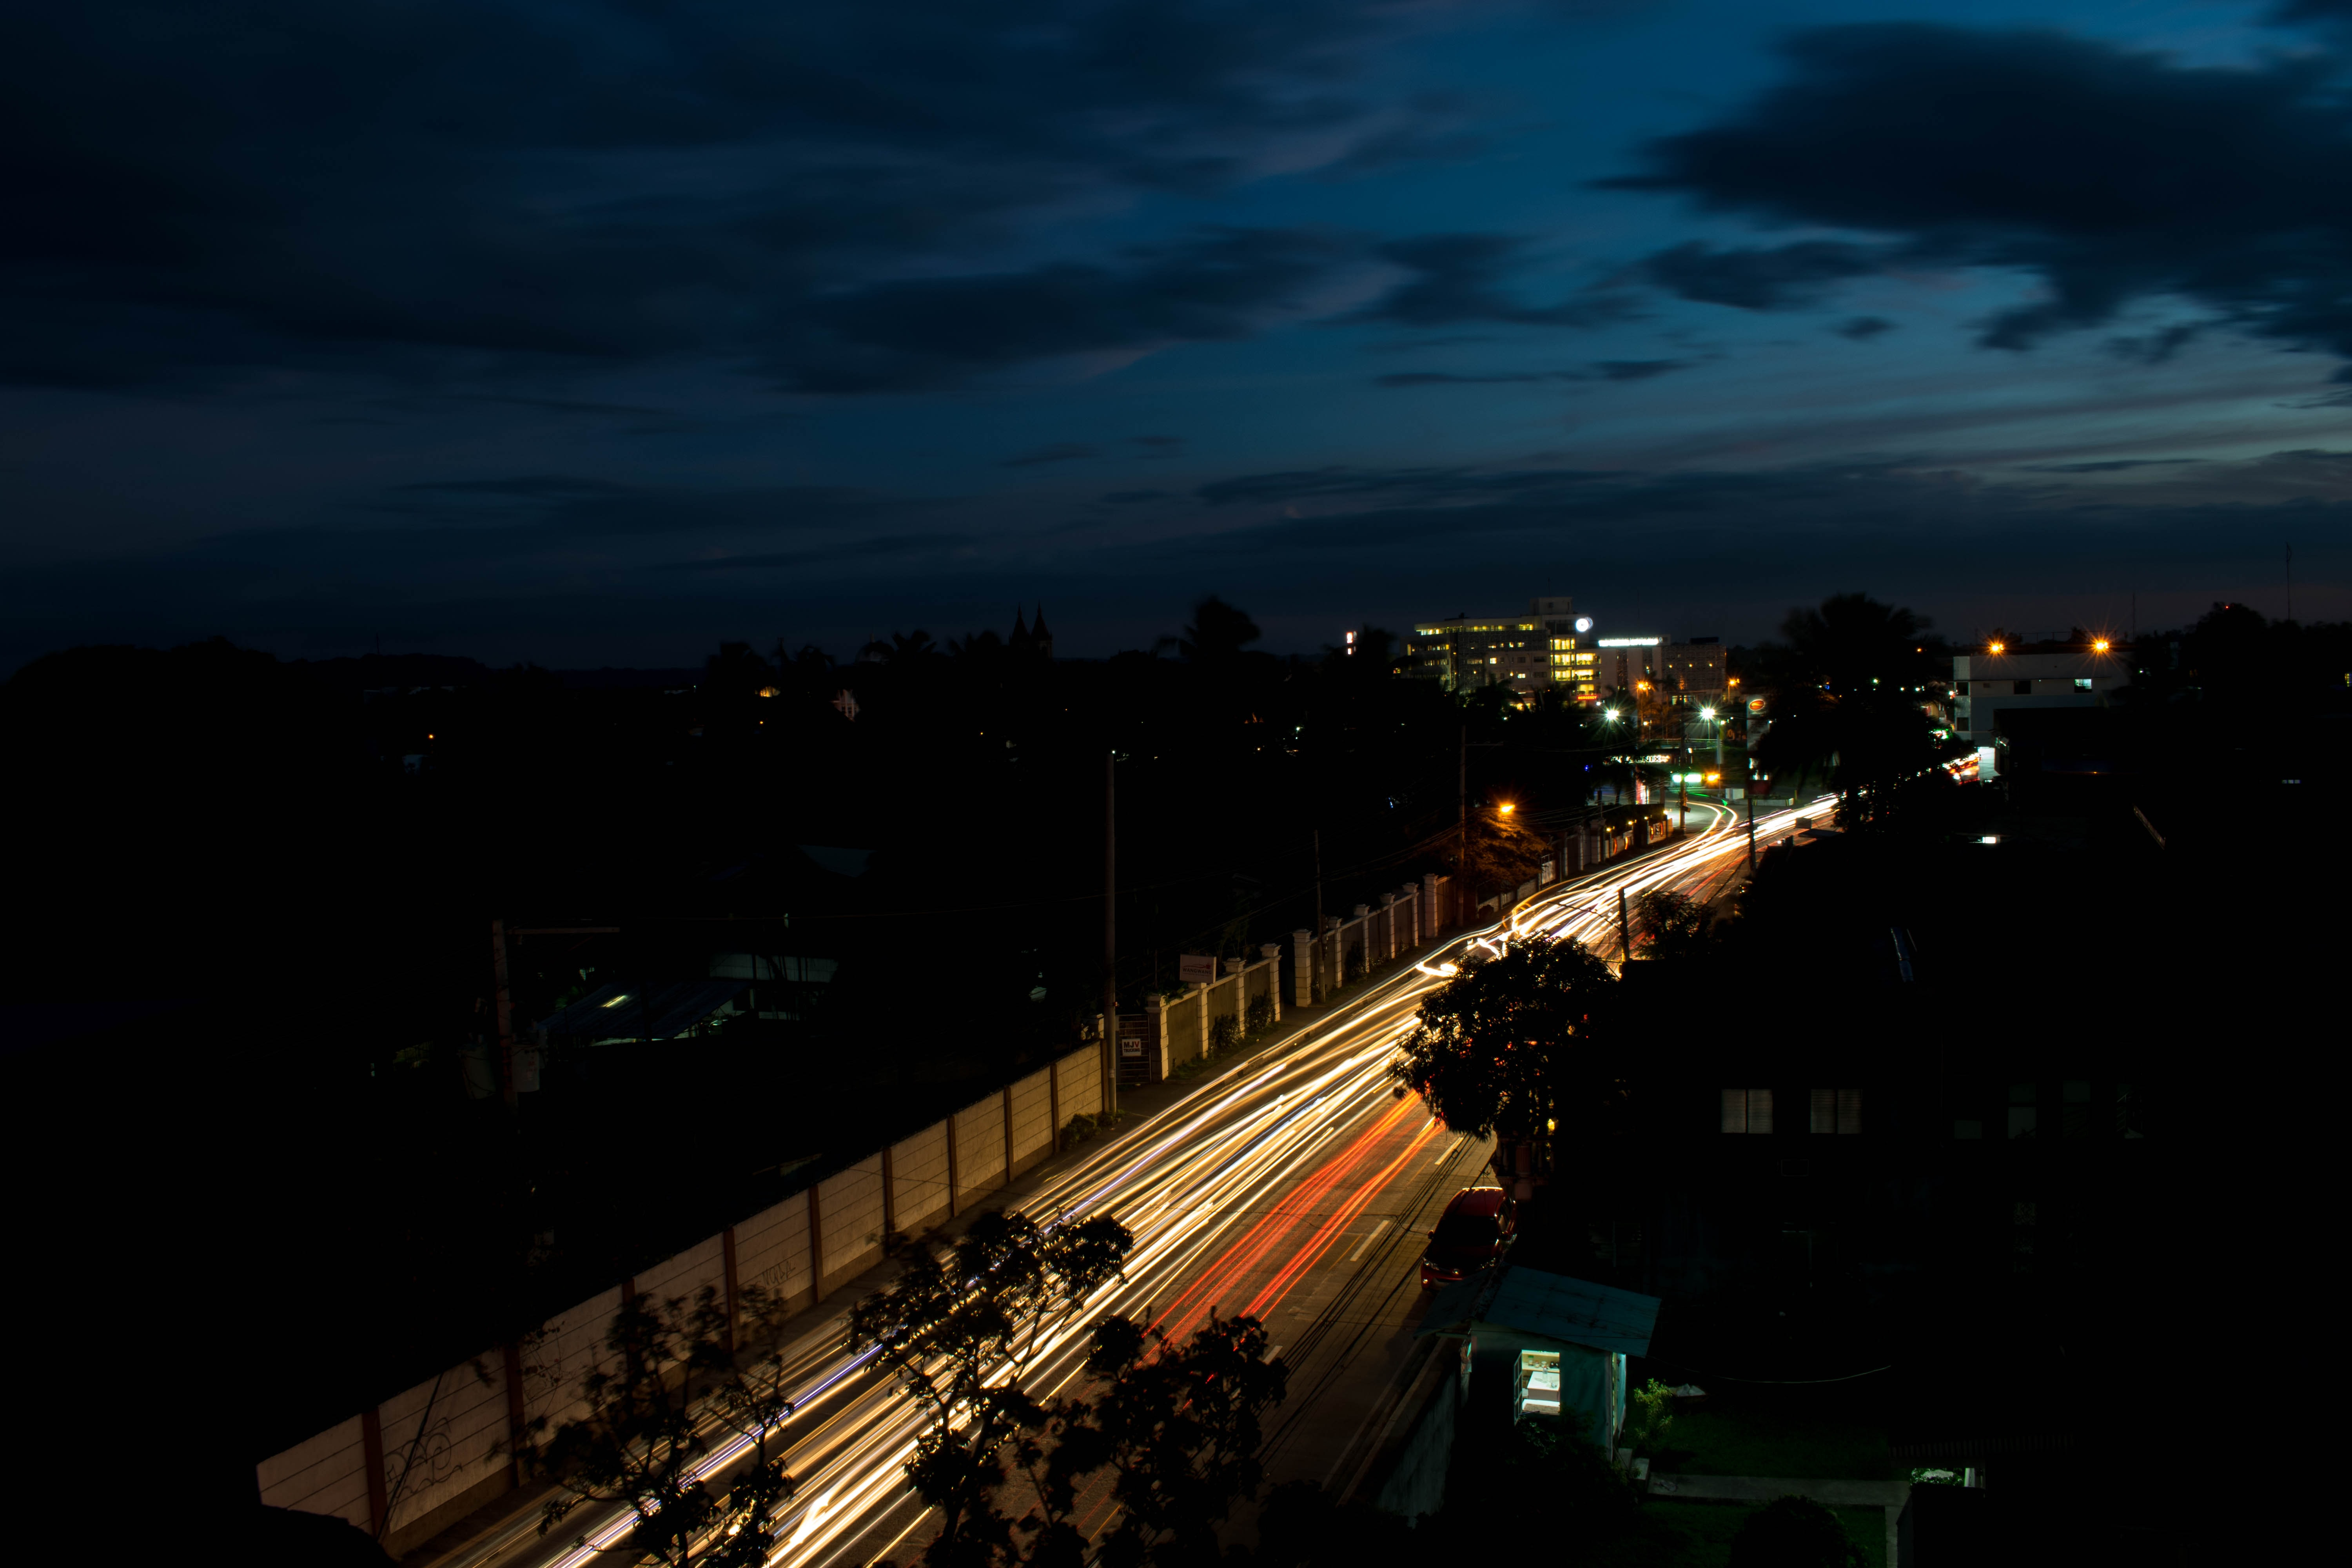 time lapse photography of cars on road at night